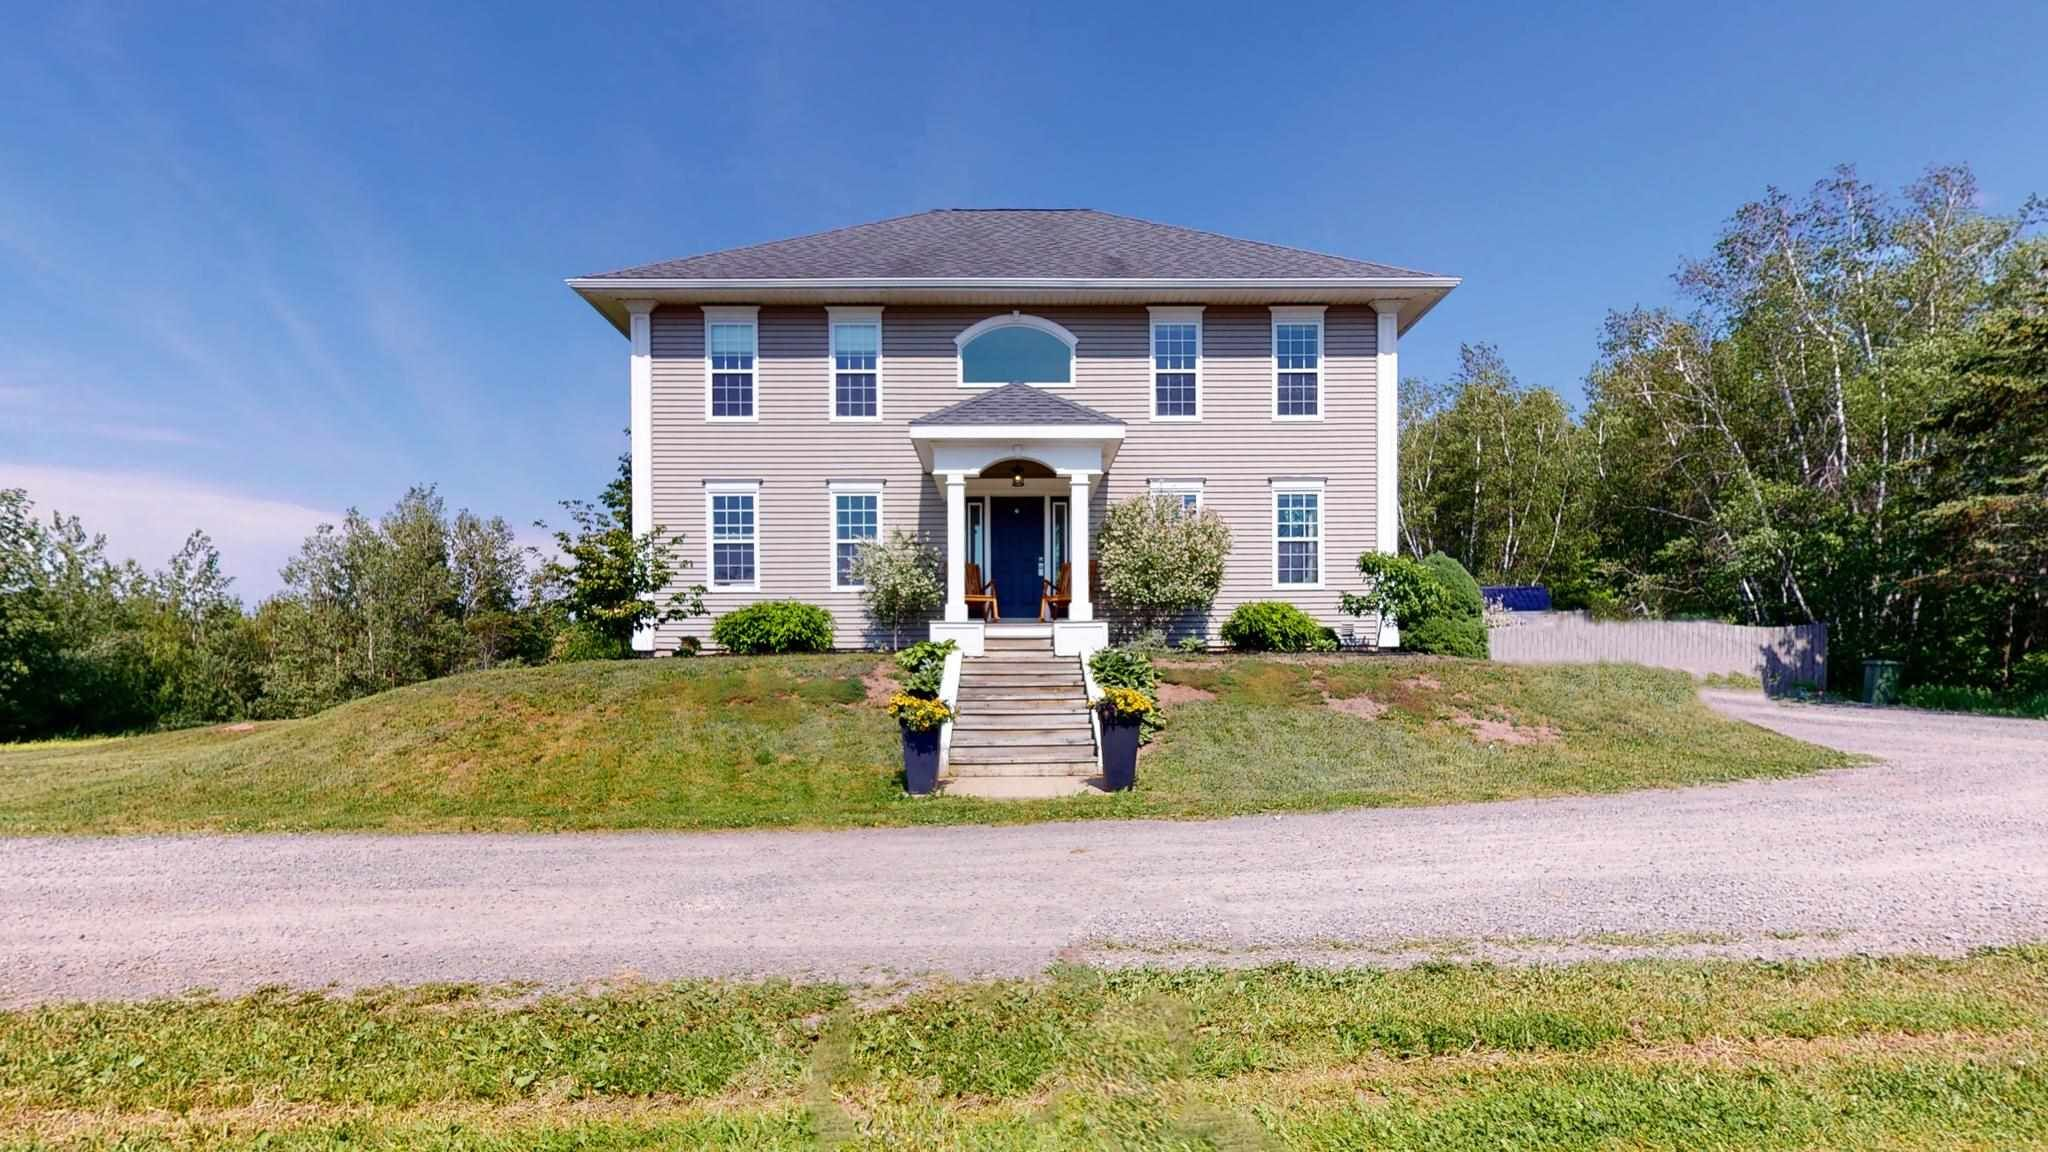 Main Photo: 1178 Middle Dyke Road in Centreville: 404-Kings County Residential for sale (Annapolis Valley)  : MLS®# 202114619